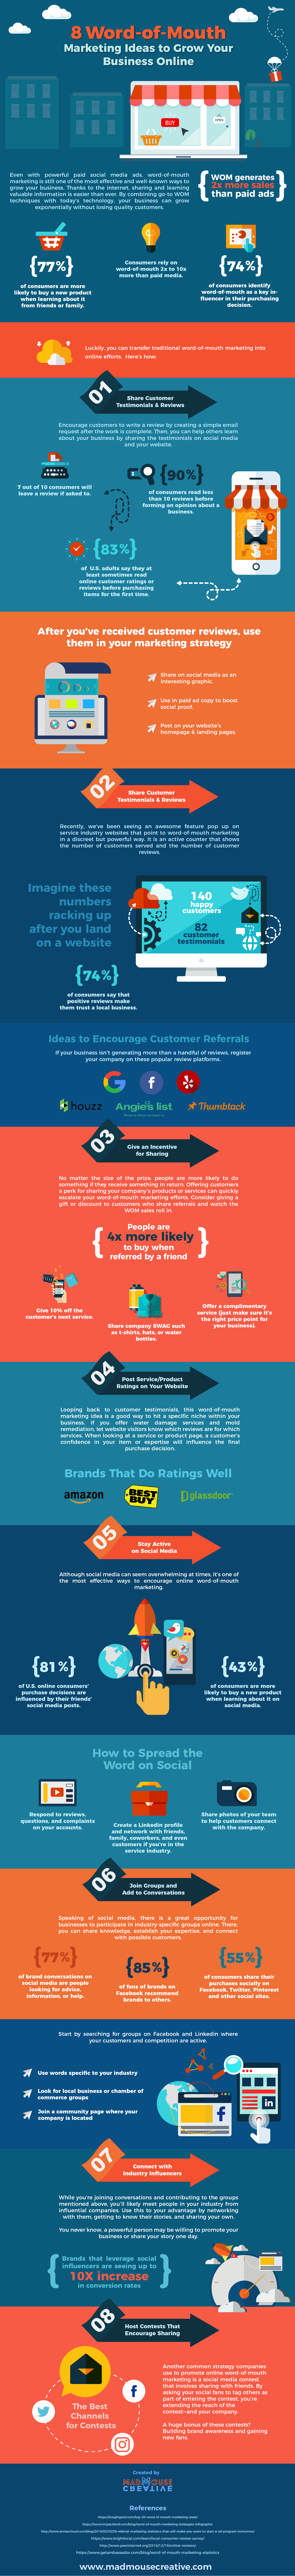 Marketing by word of mouth infographic by Elevare